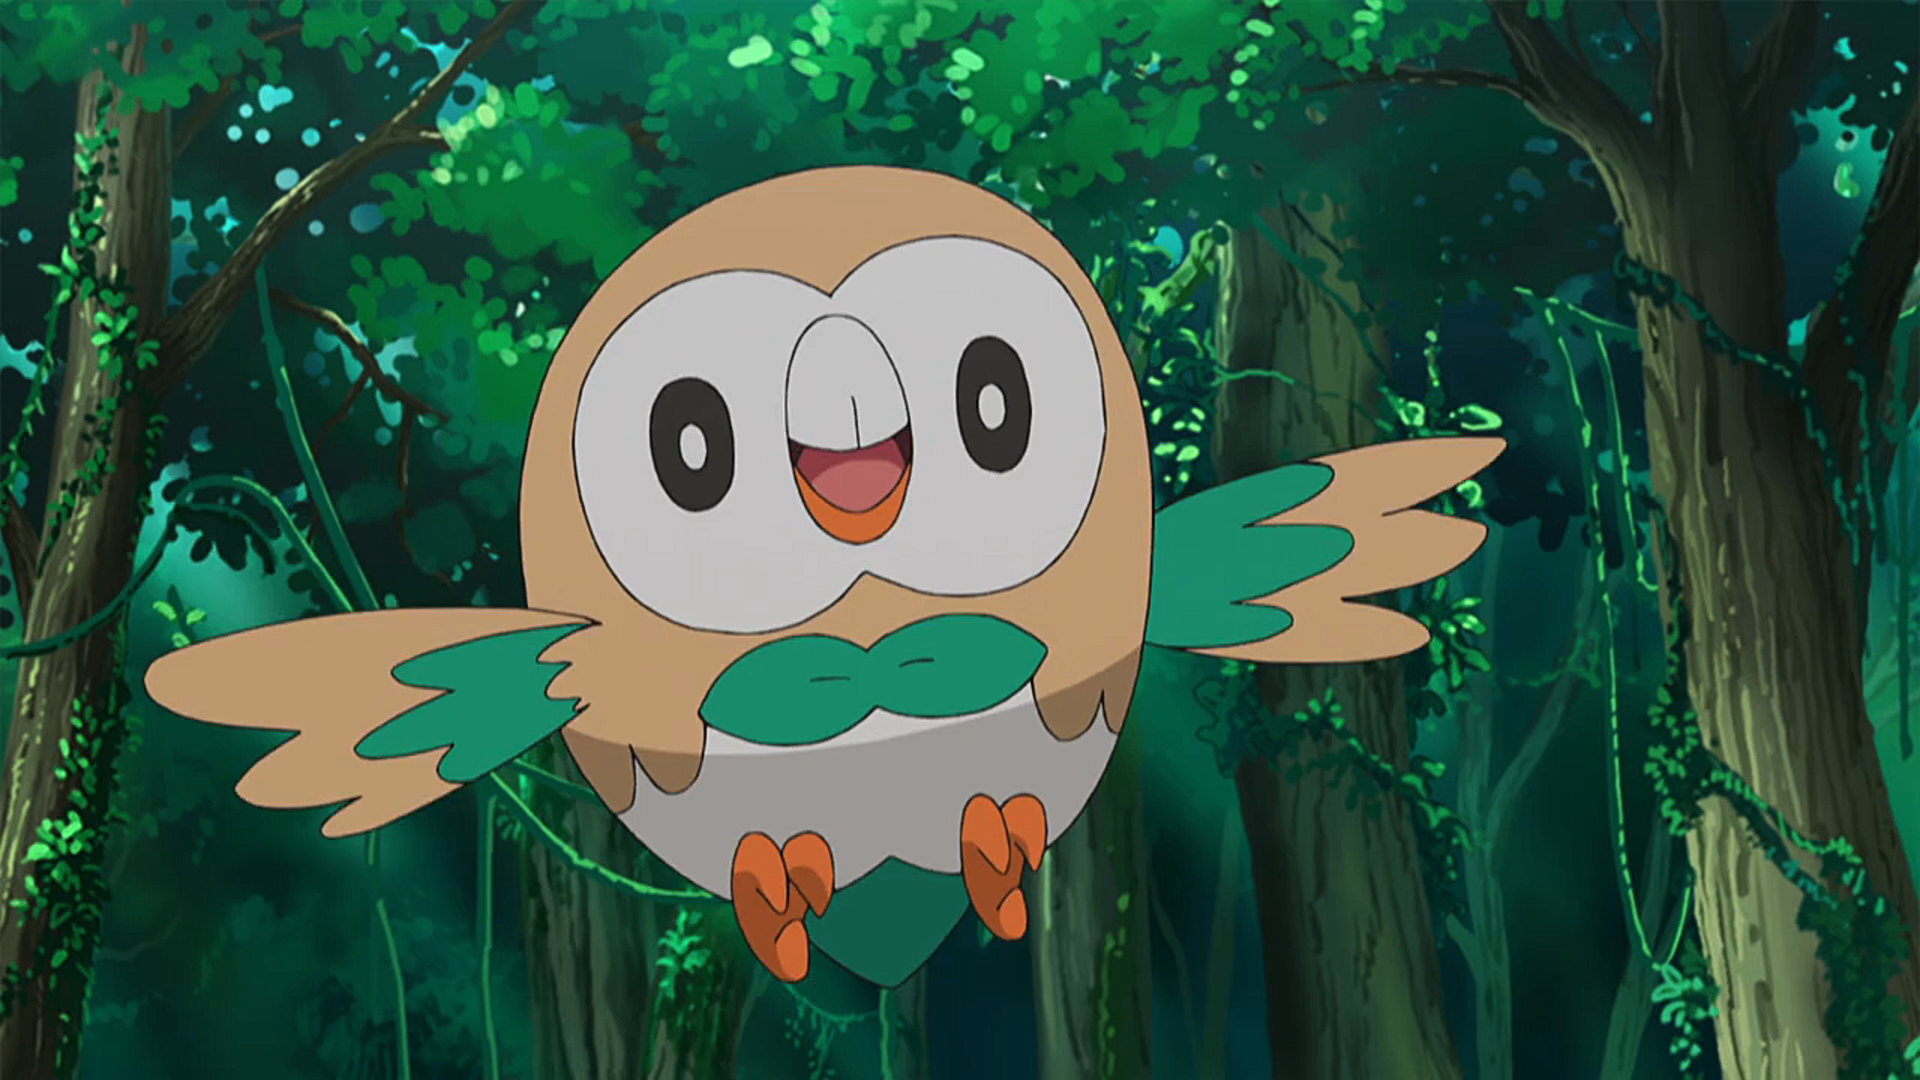 Ash's Rowlet | Pokémon Wiki | FANDOM powered by Wikia